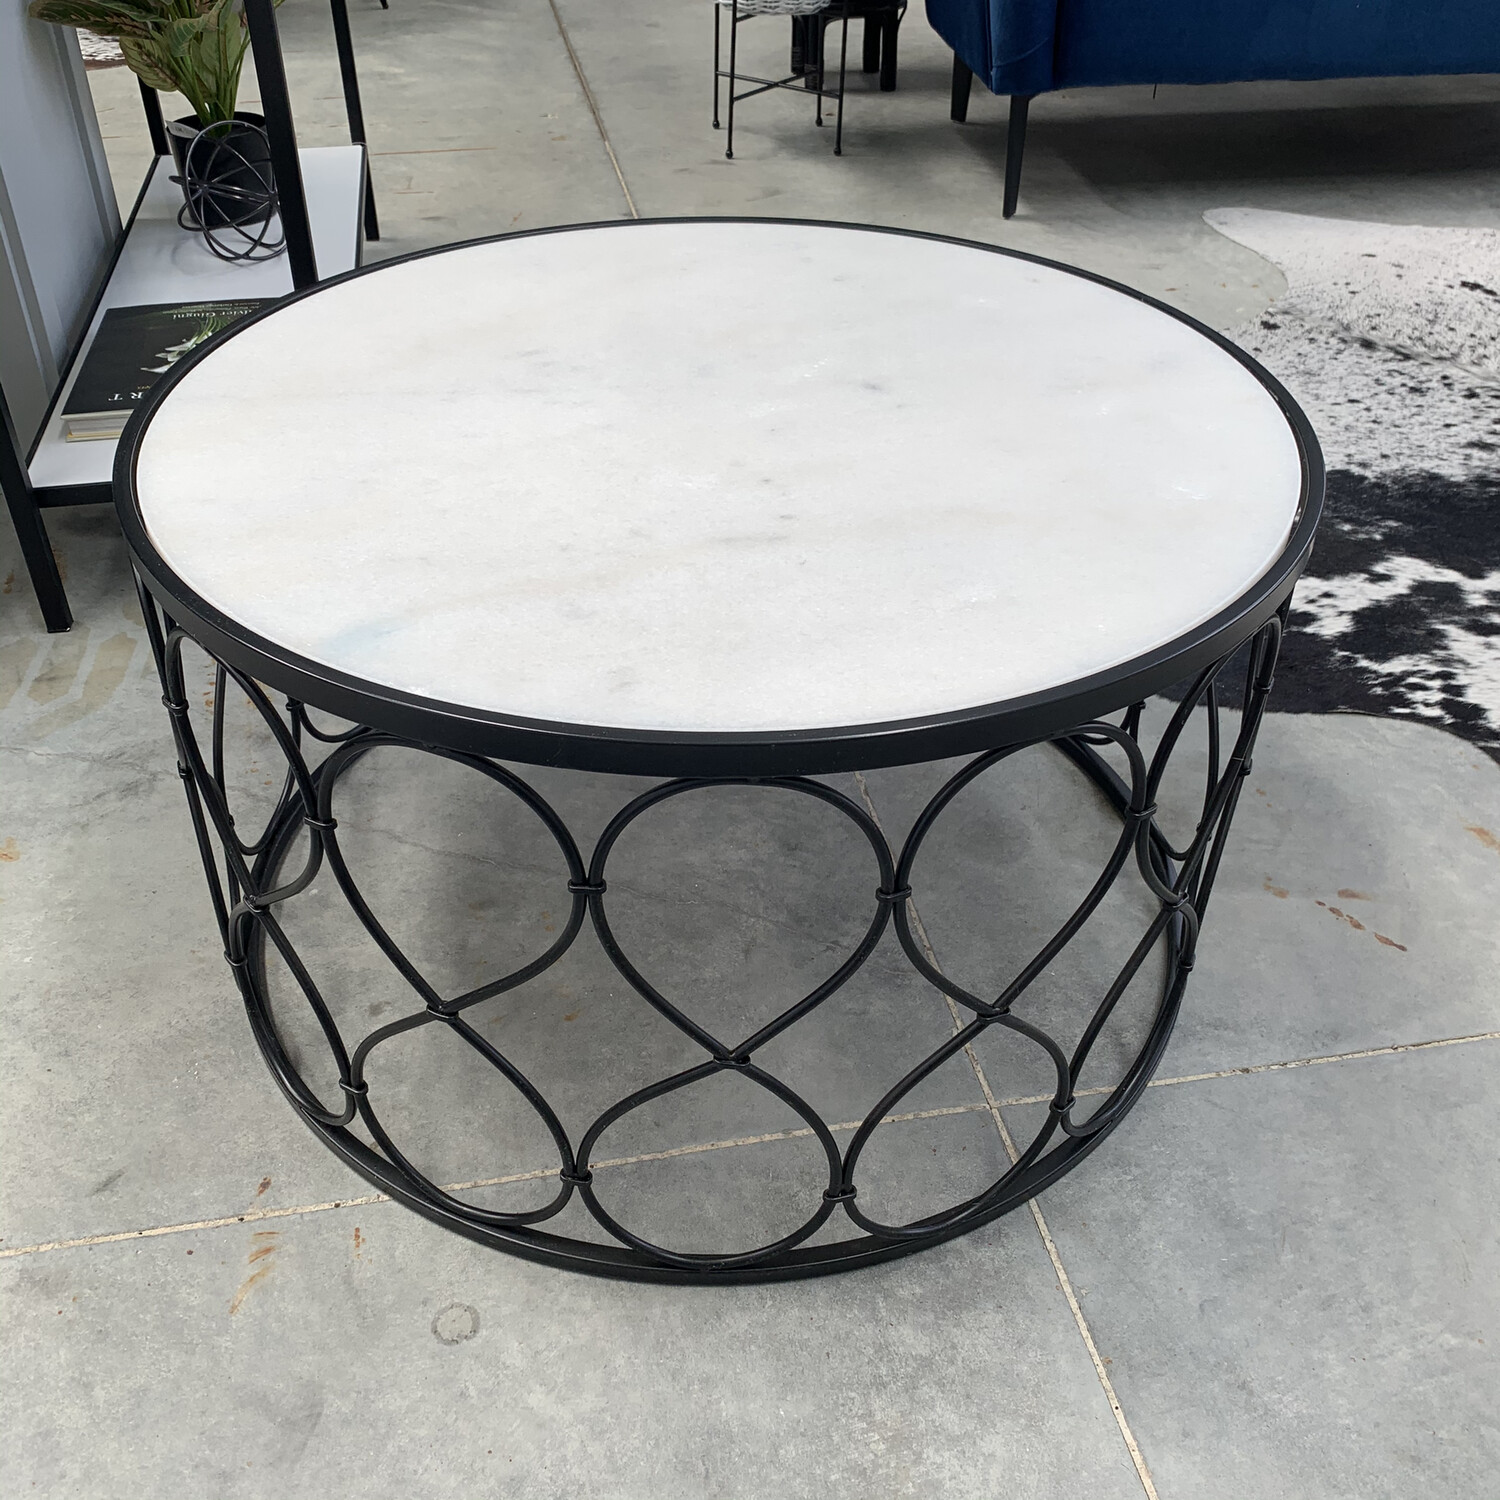 MARBLE COFFEE TABLE - SMALL